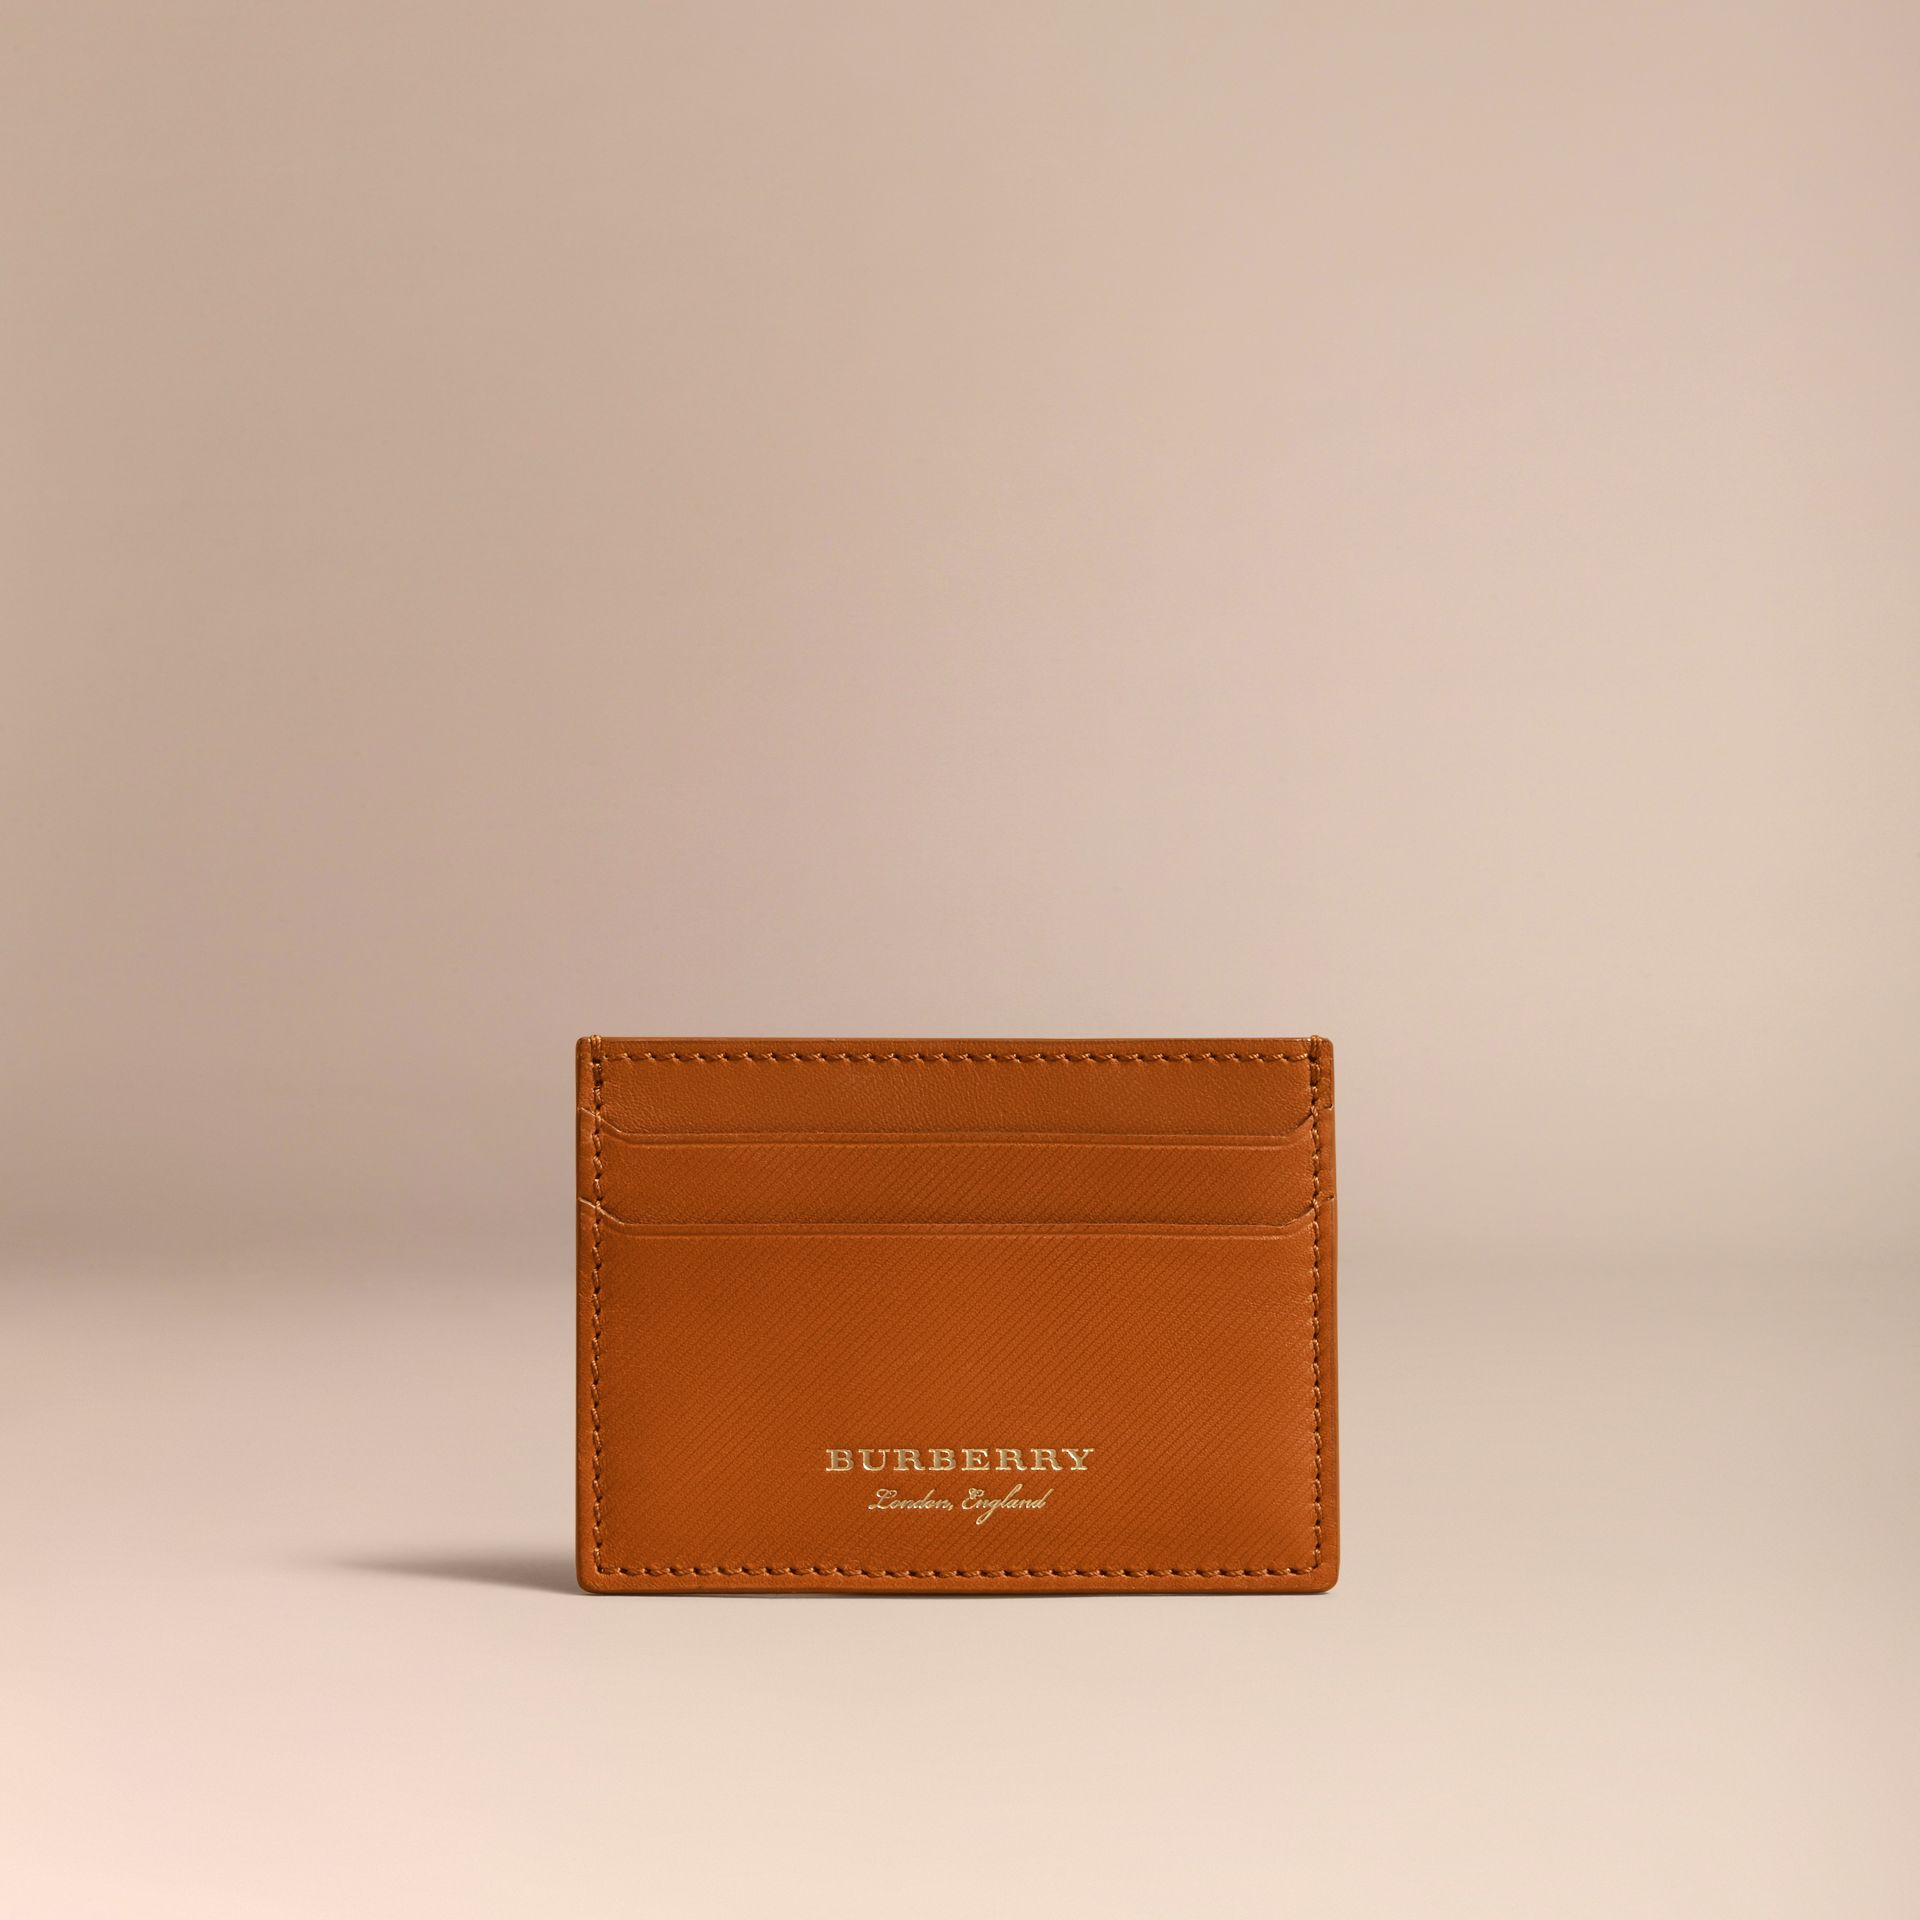 Trench Leather Card Case in Tan - Men | Burberry Canada - gallery image 5